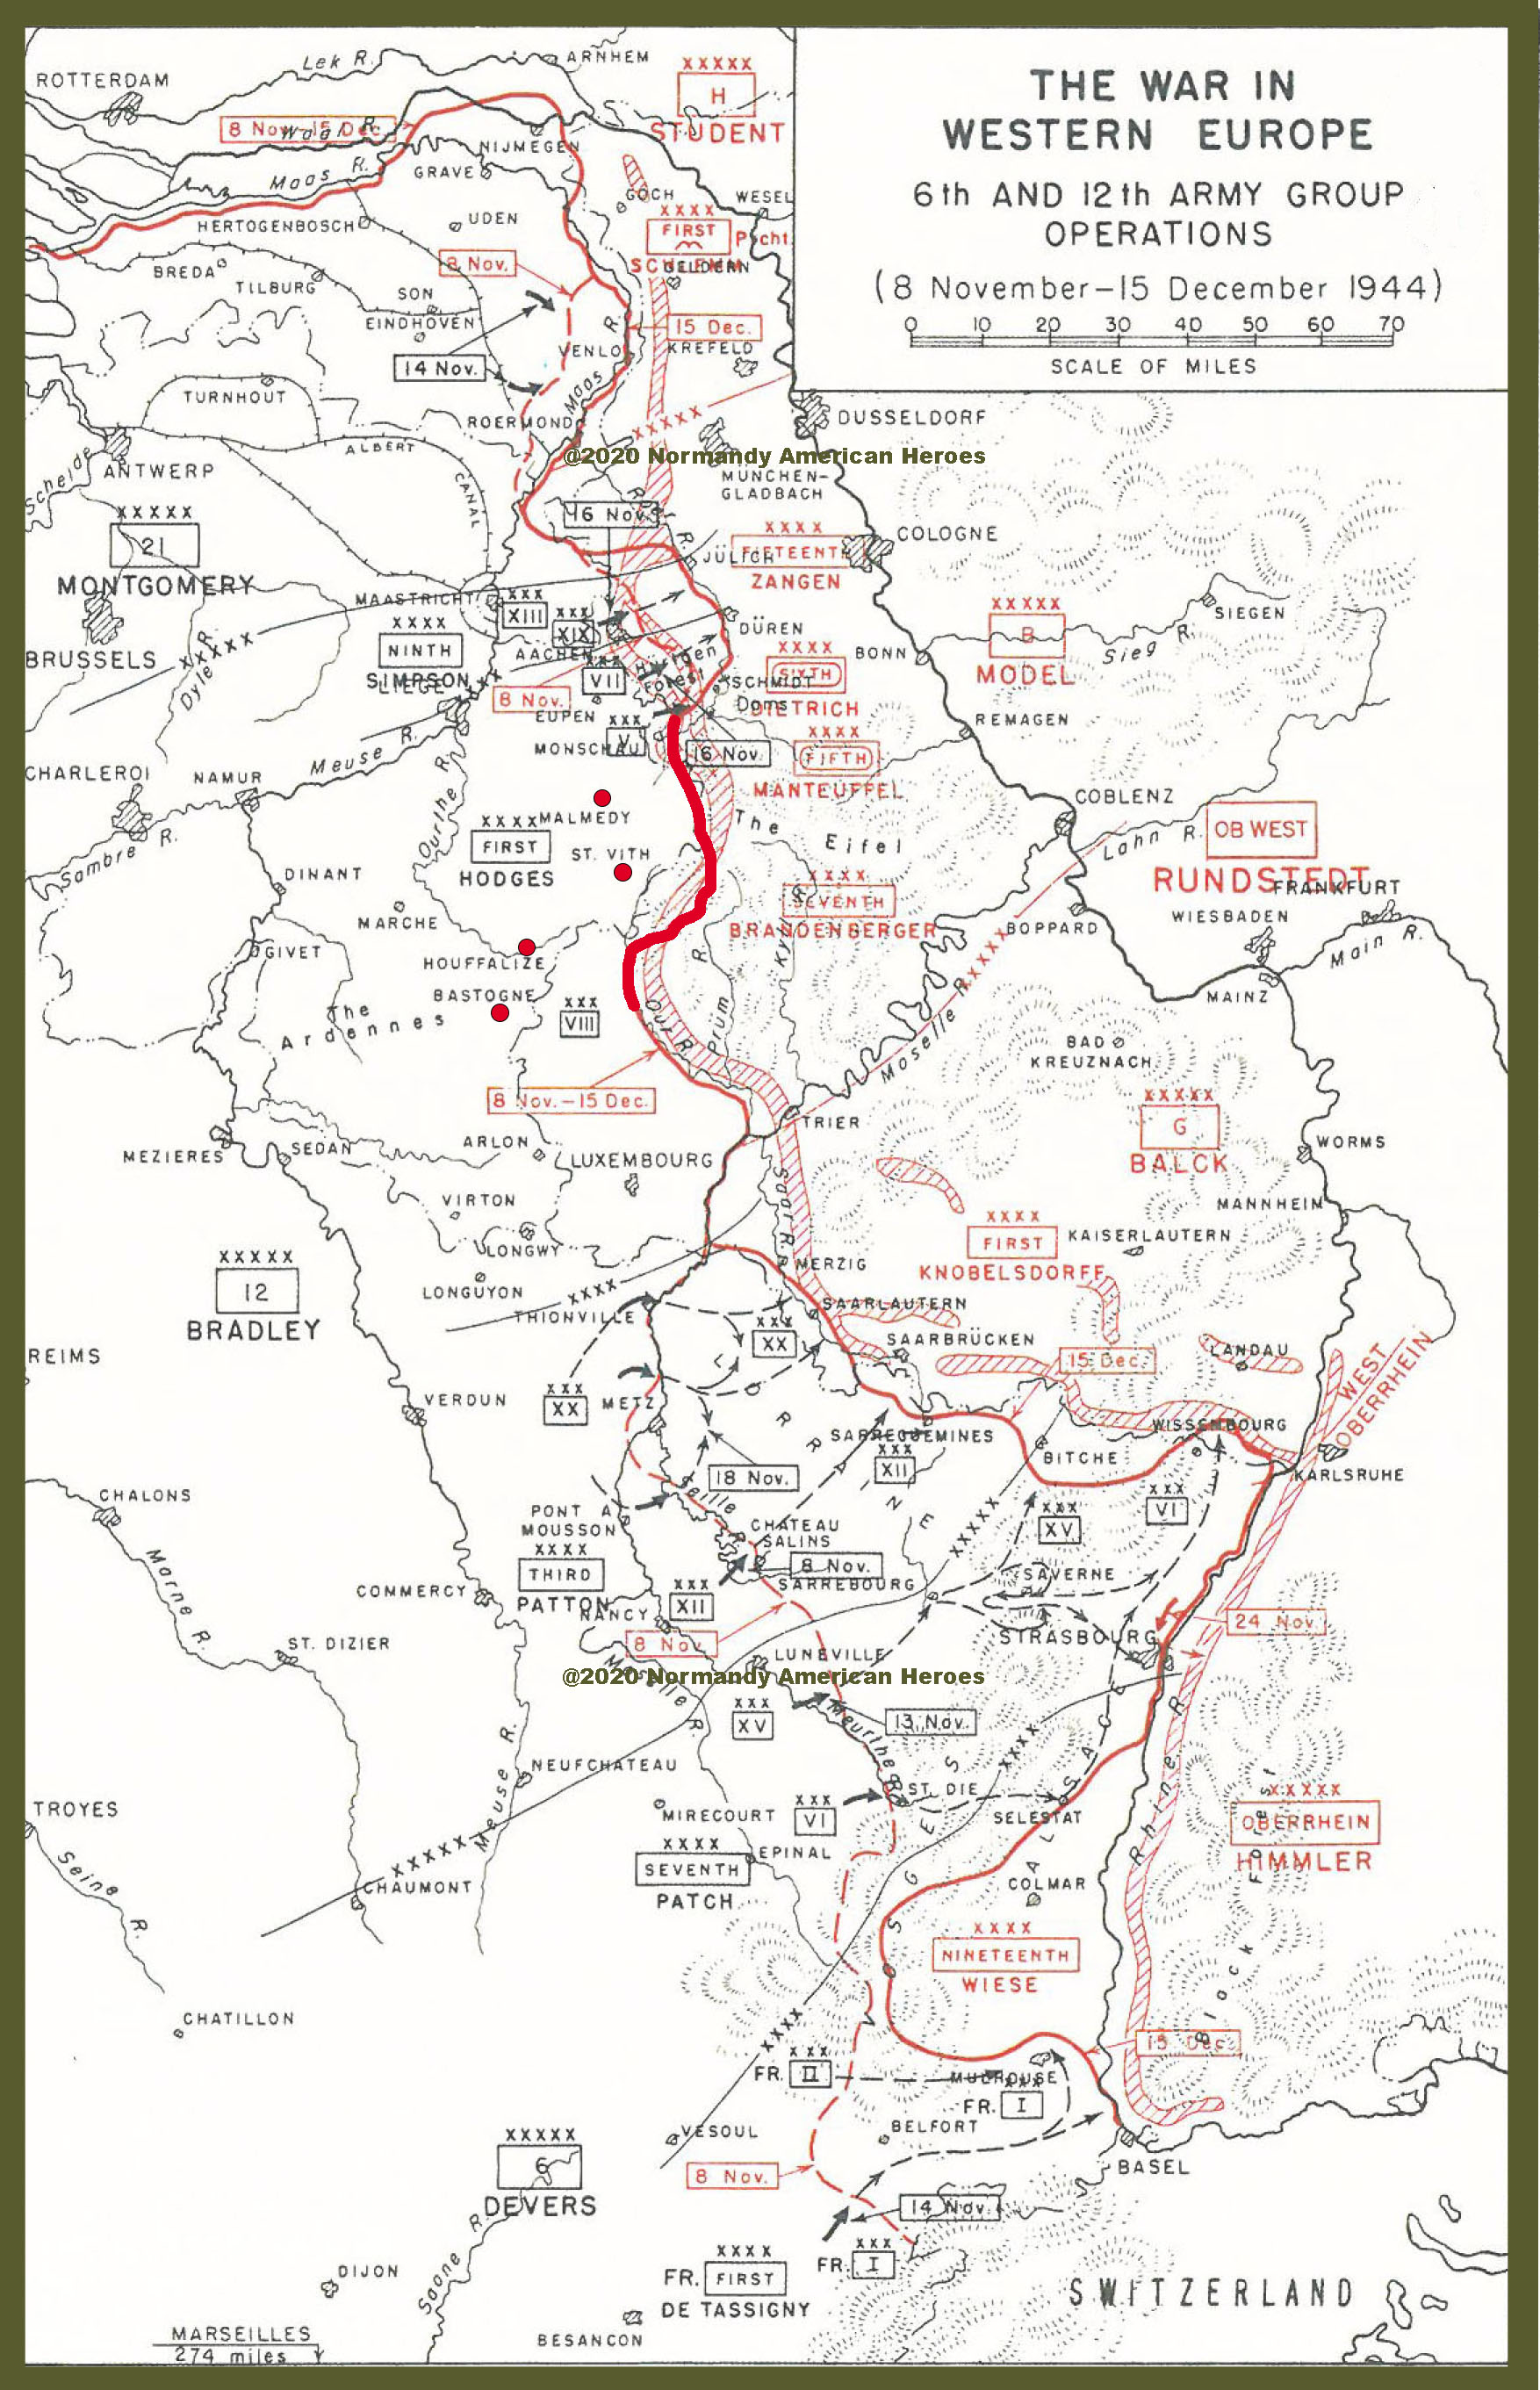 8 November to 15 December 1944 6th and 12th Amry Group Opeations